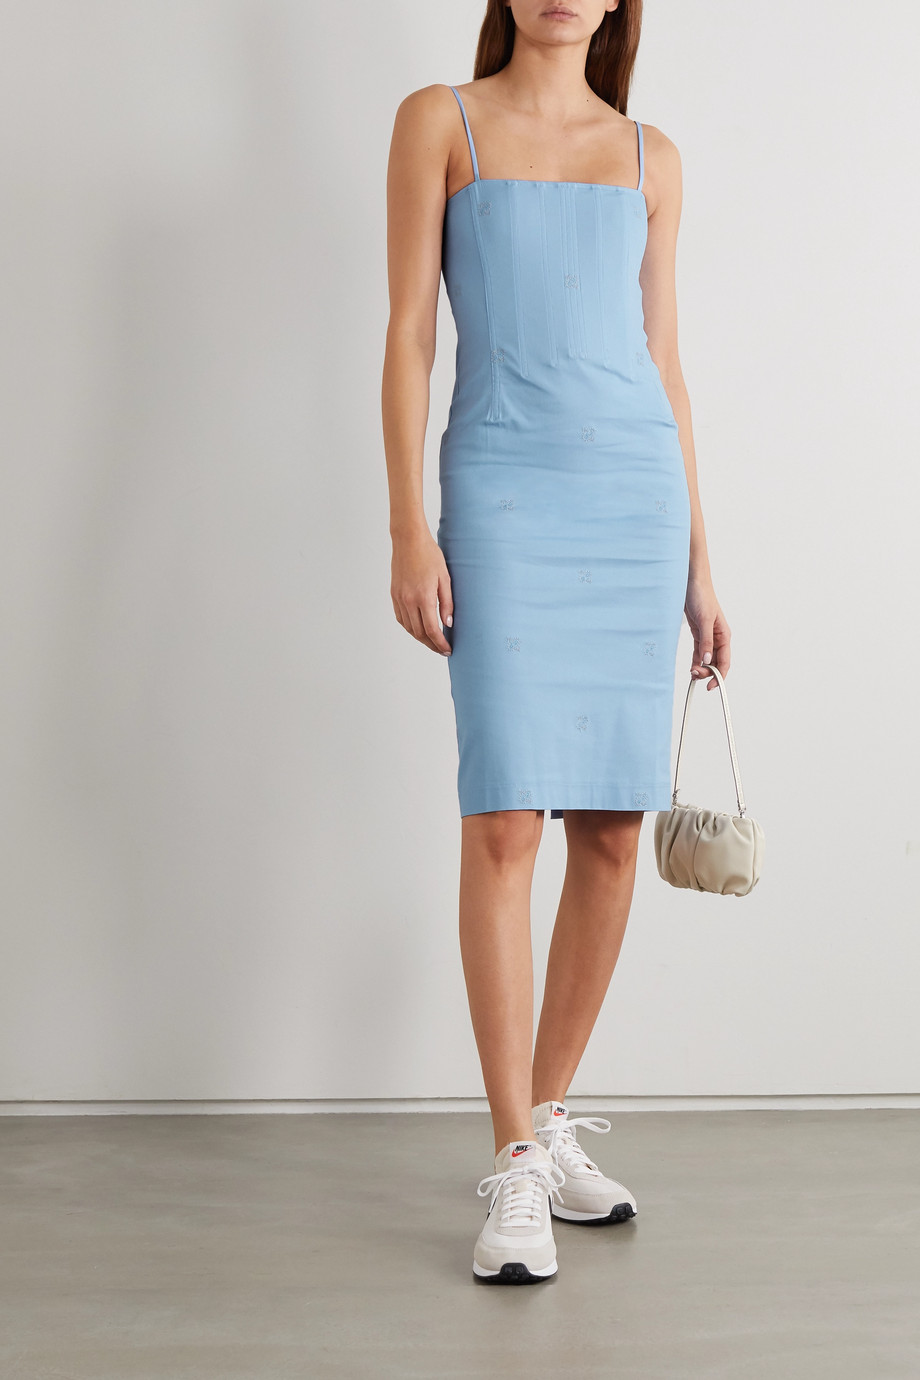 Miaou + NET SUSTAIN Degas embroidered stretch-cotton chambray dress